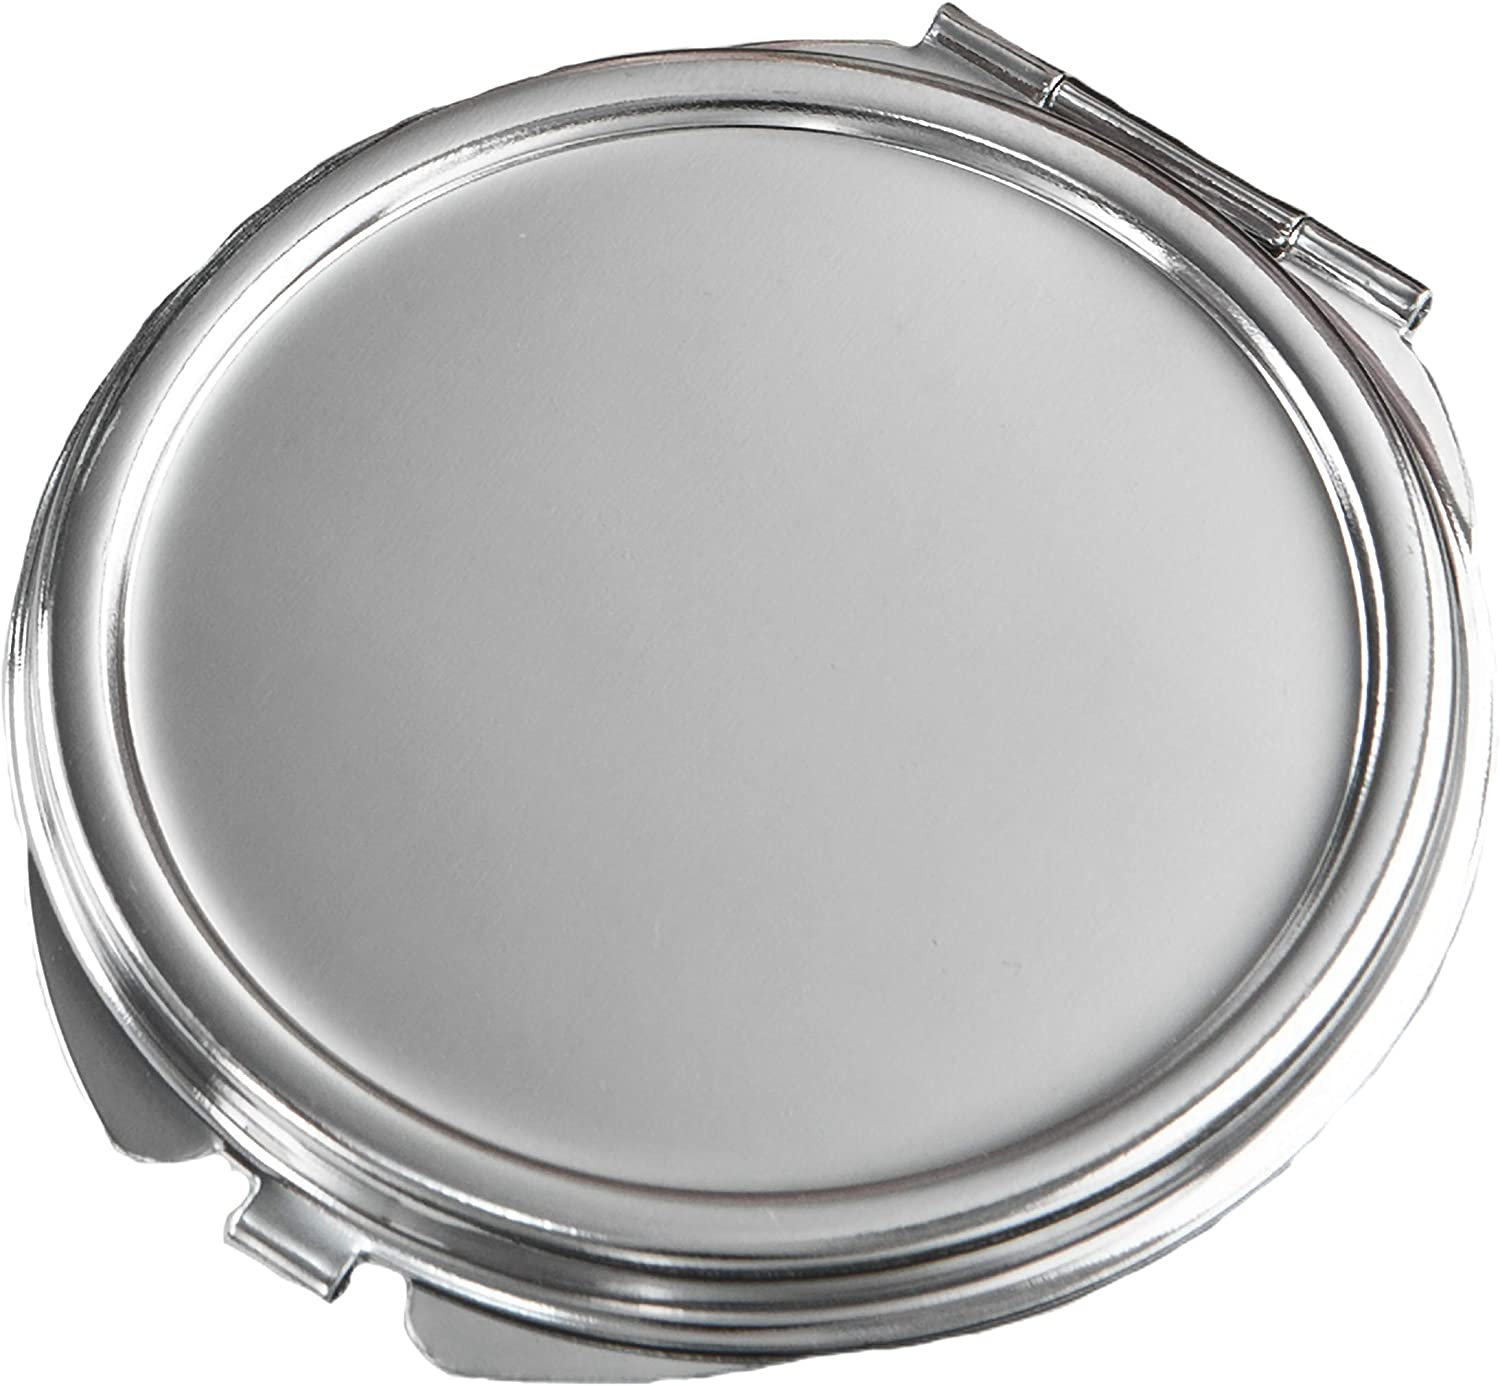 FASHIONCRAFT Raleigh Mall 6796 Travel Pocket Max 59% OFF Mirror Makeup Compact M